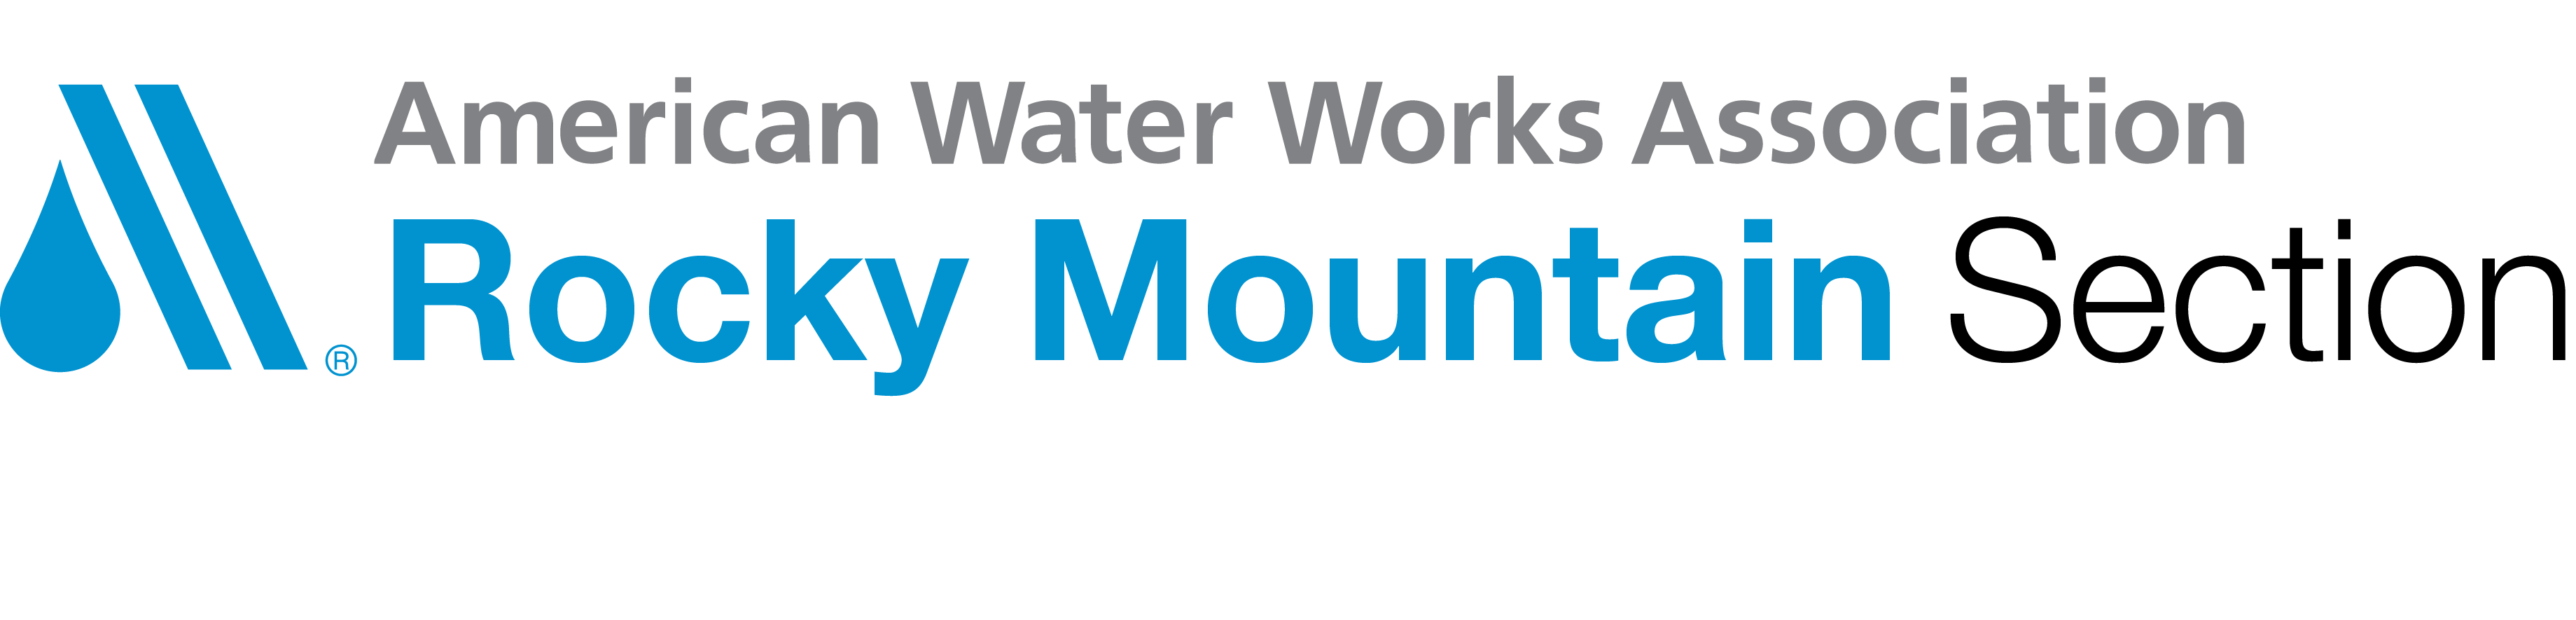 Rocky mountain section of american water works association